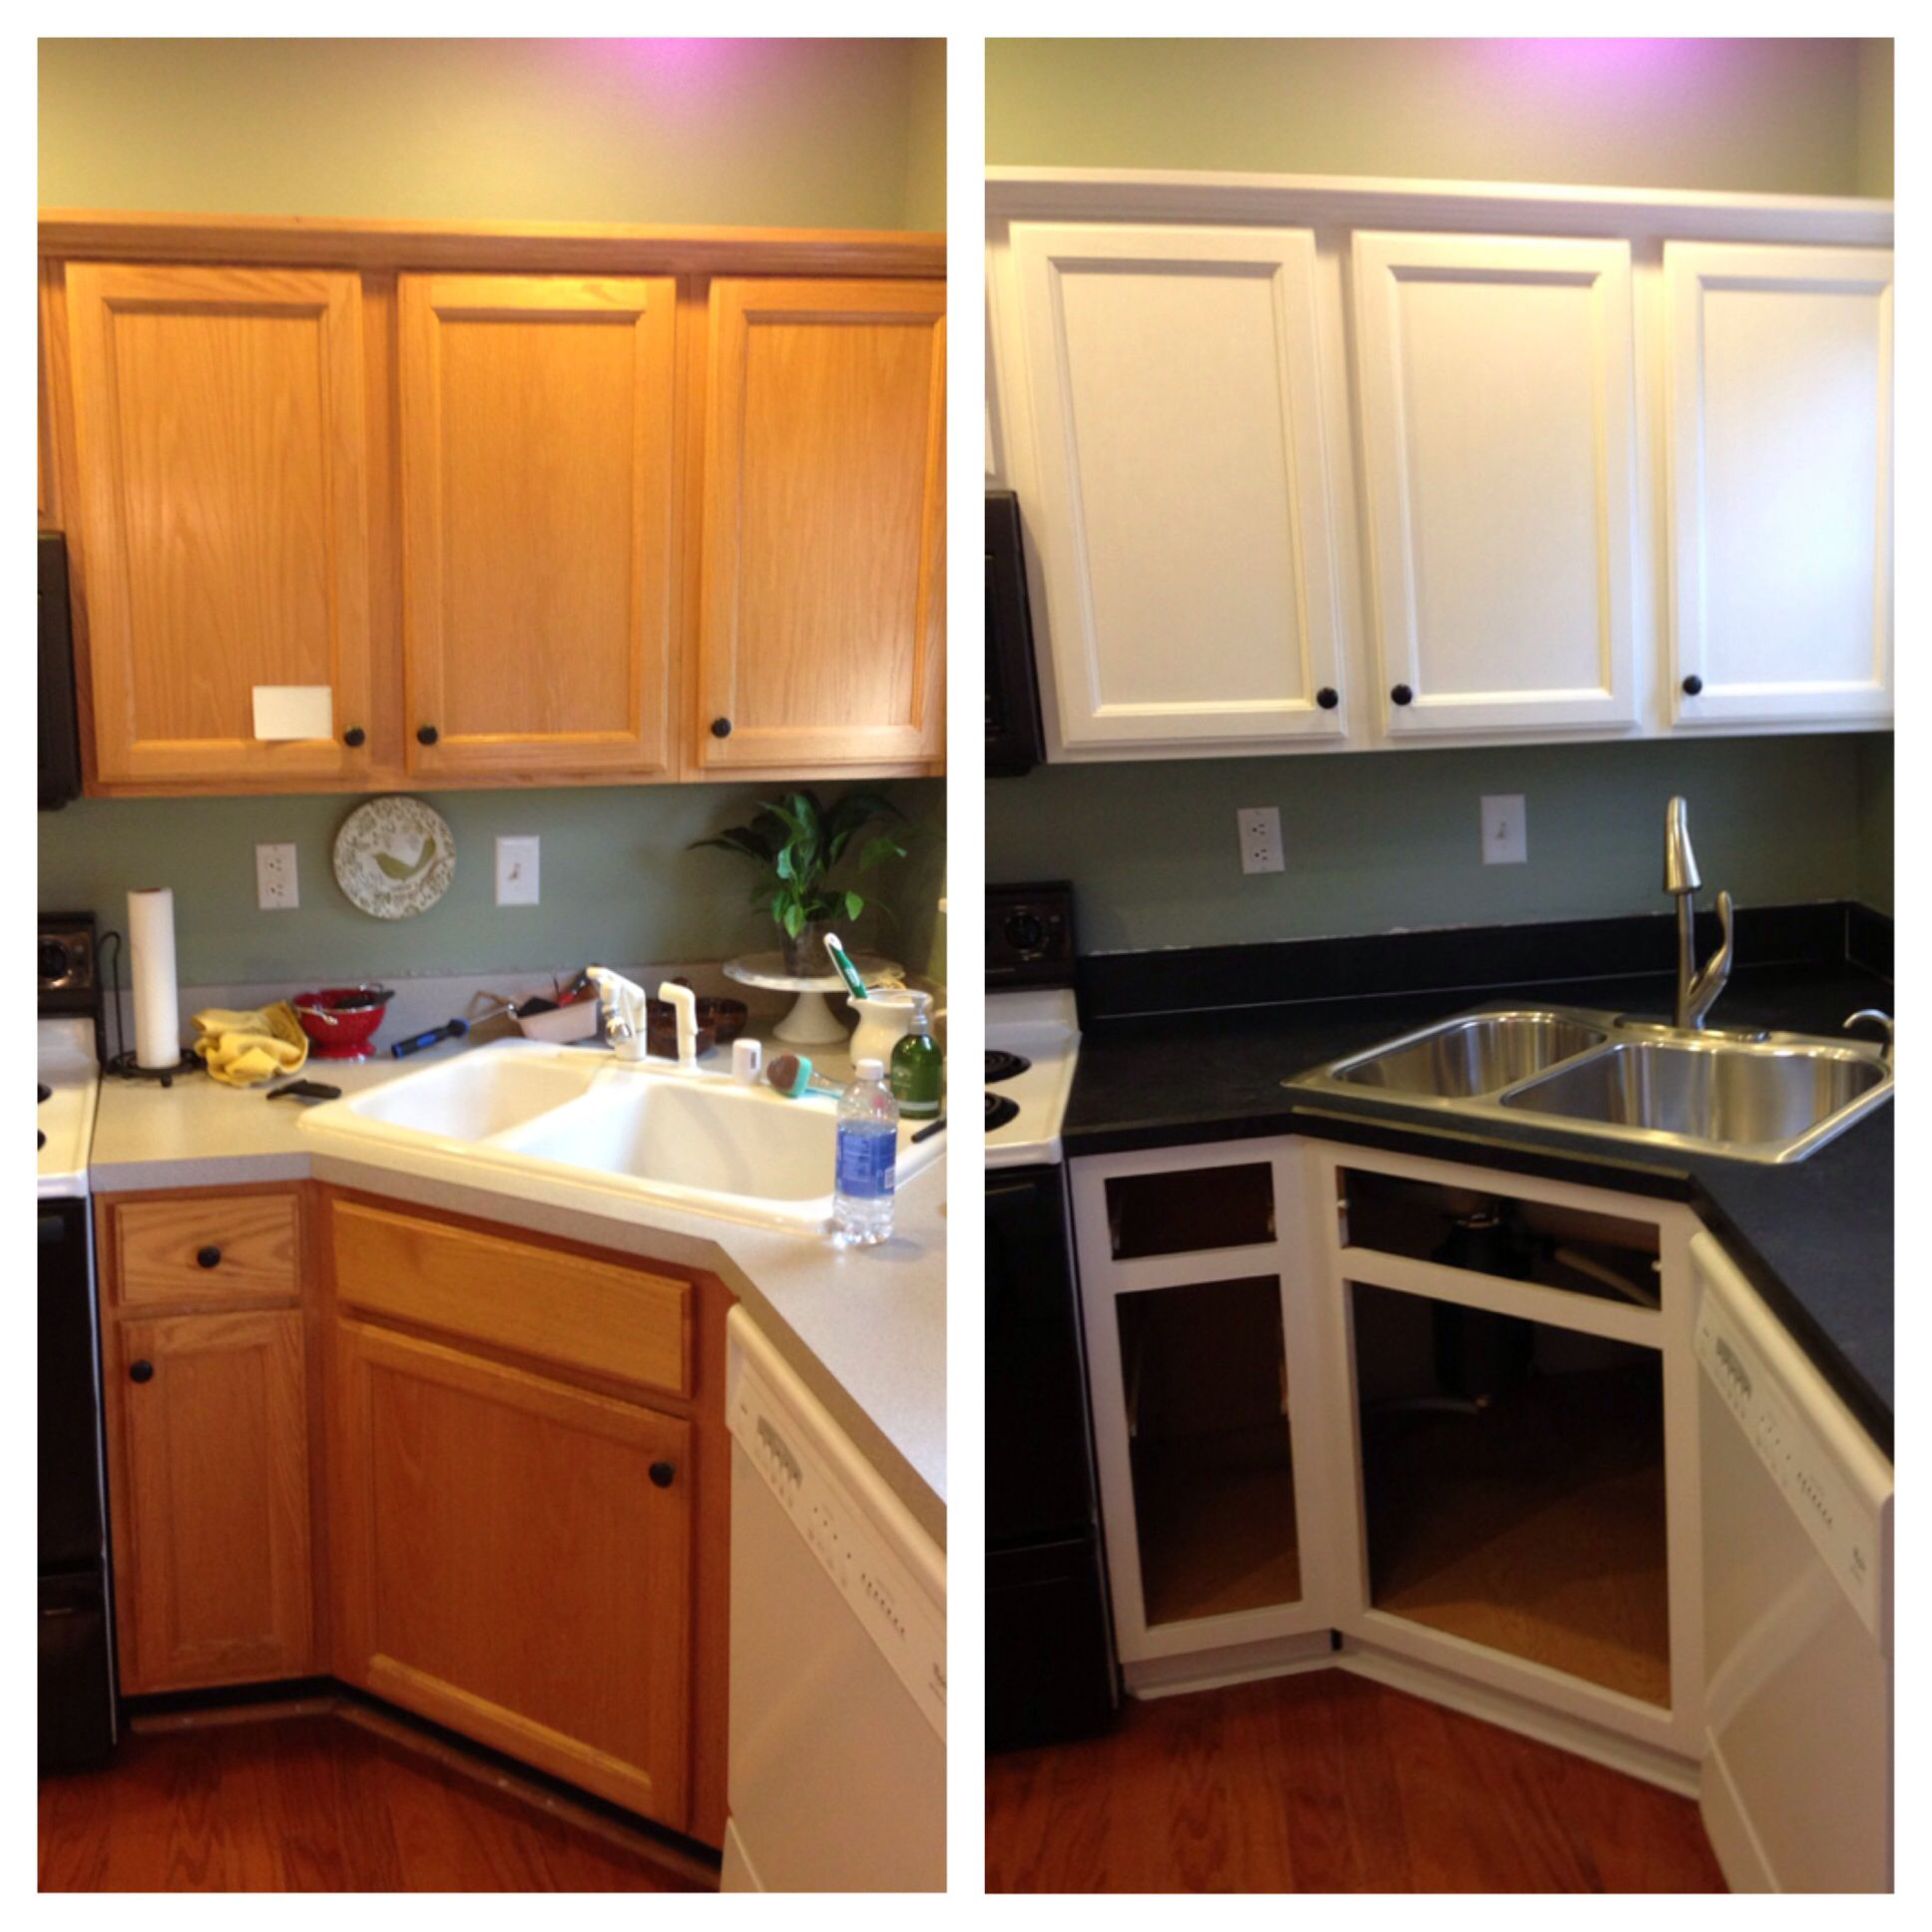 Diy Paint Kitchen Cabinets White: DIY Painted Builder Grade Oak Cabinets White. Used